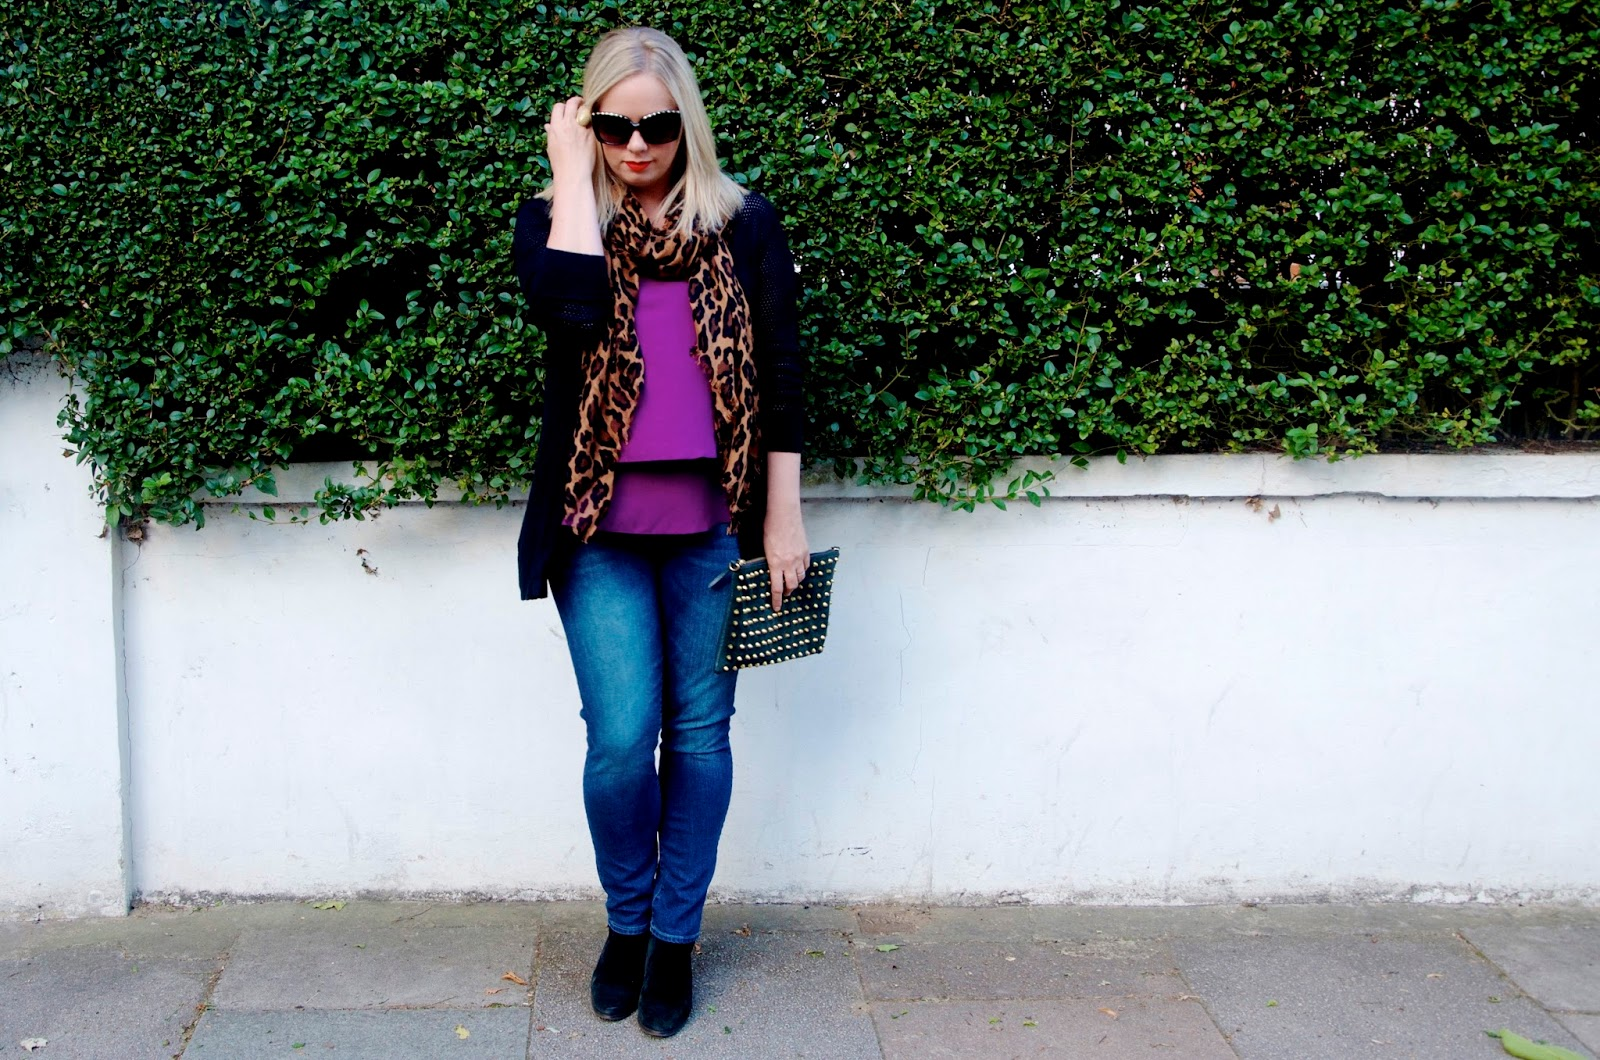 leopard print scarf, fuchsia top, studded green suede clutch